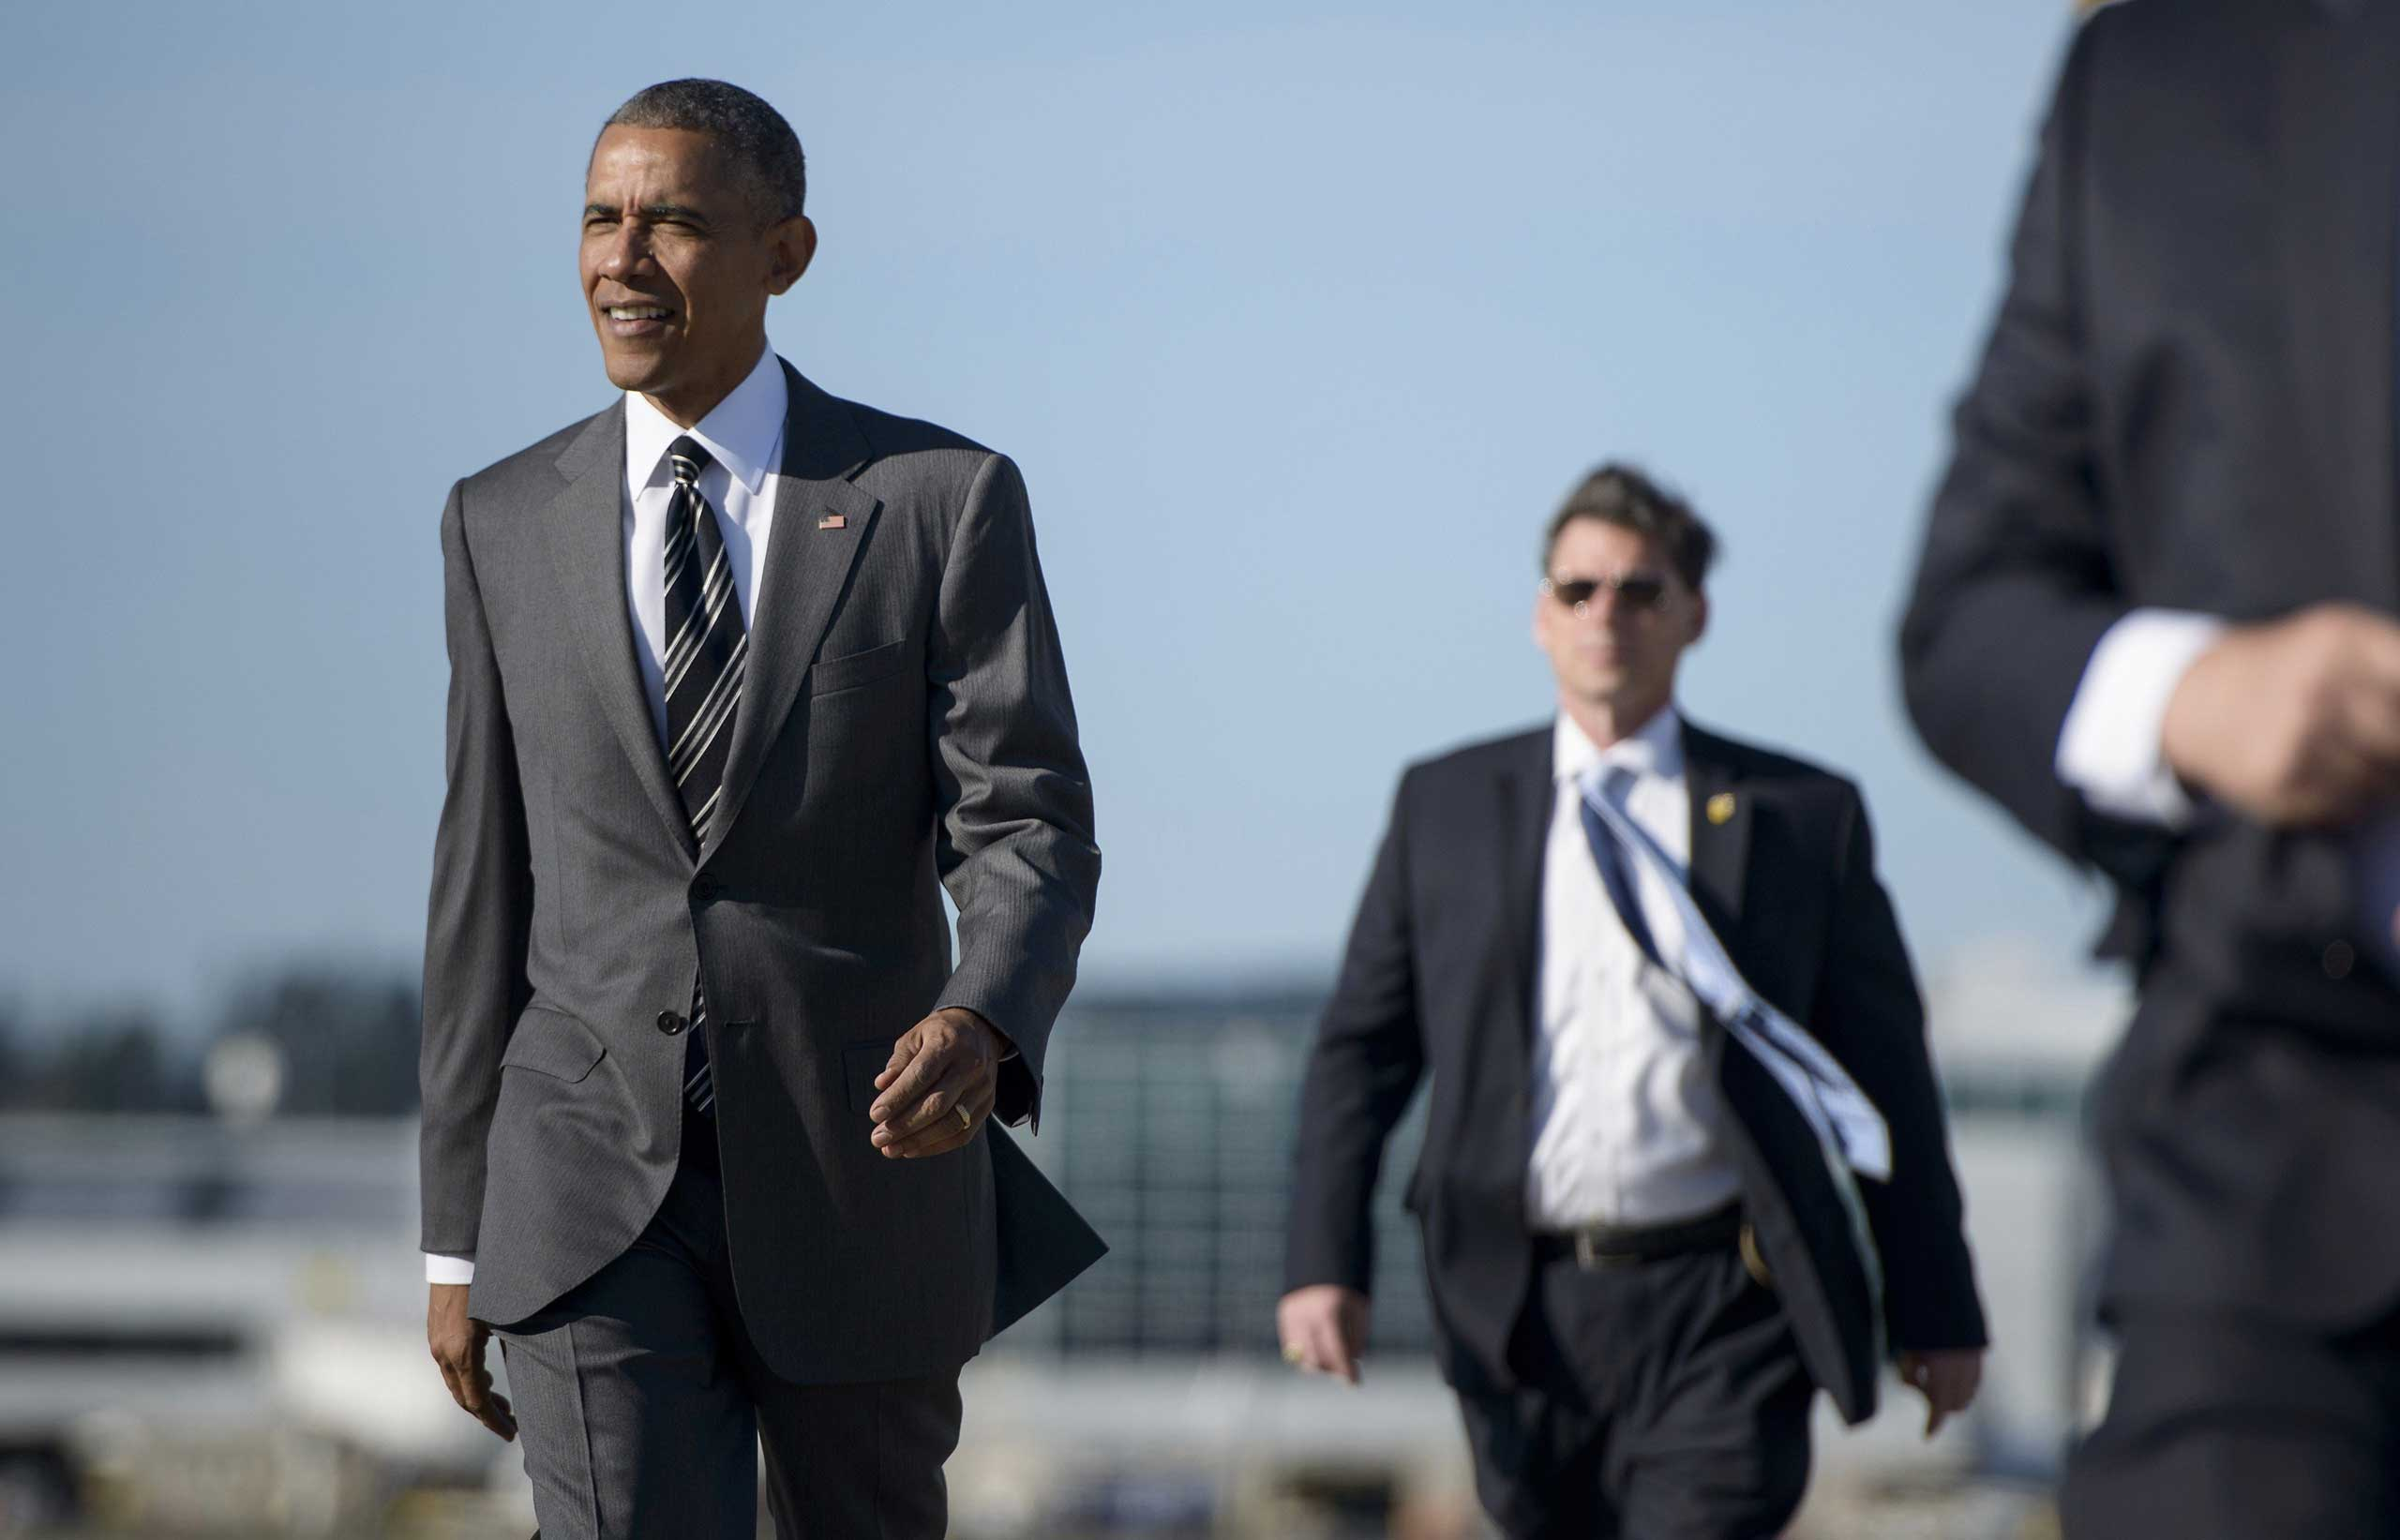 President Barack Obama arrives at the Oregon Air National Guard Base ahead of a fundraiswer at Nike, in Portland on May 7, 2015.